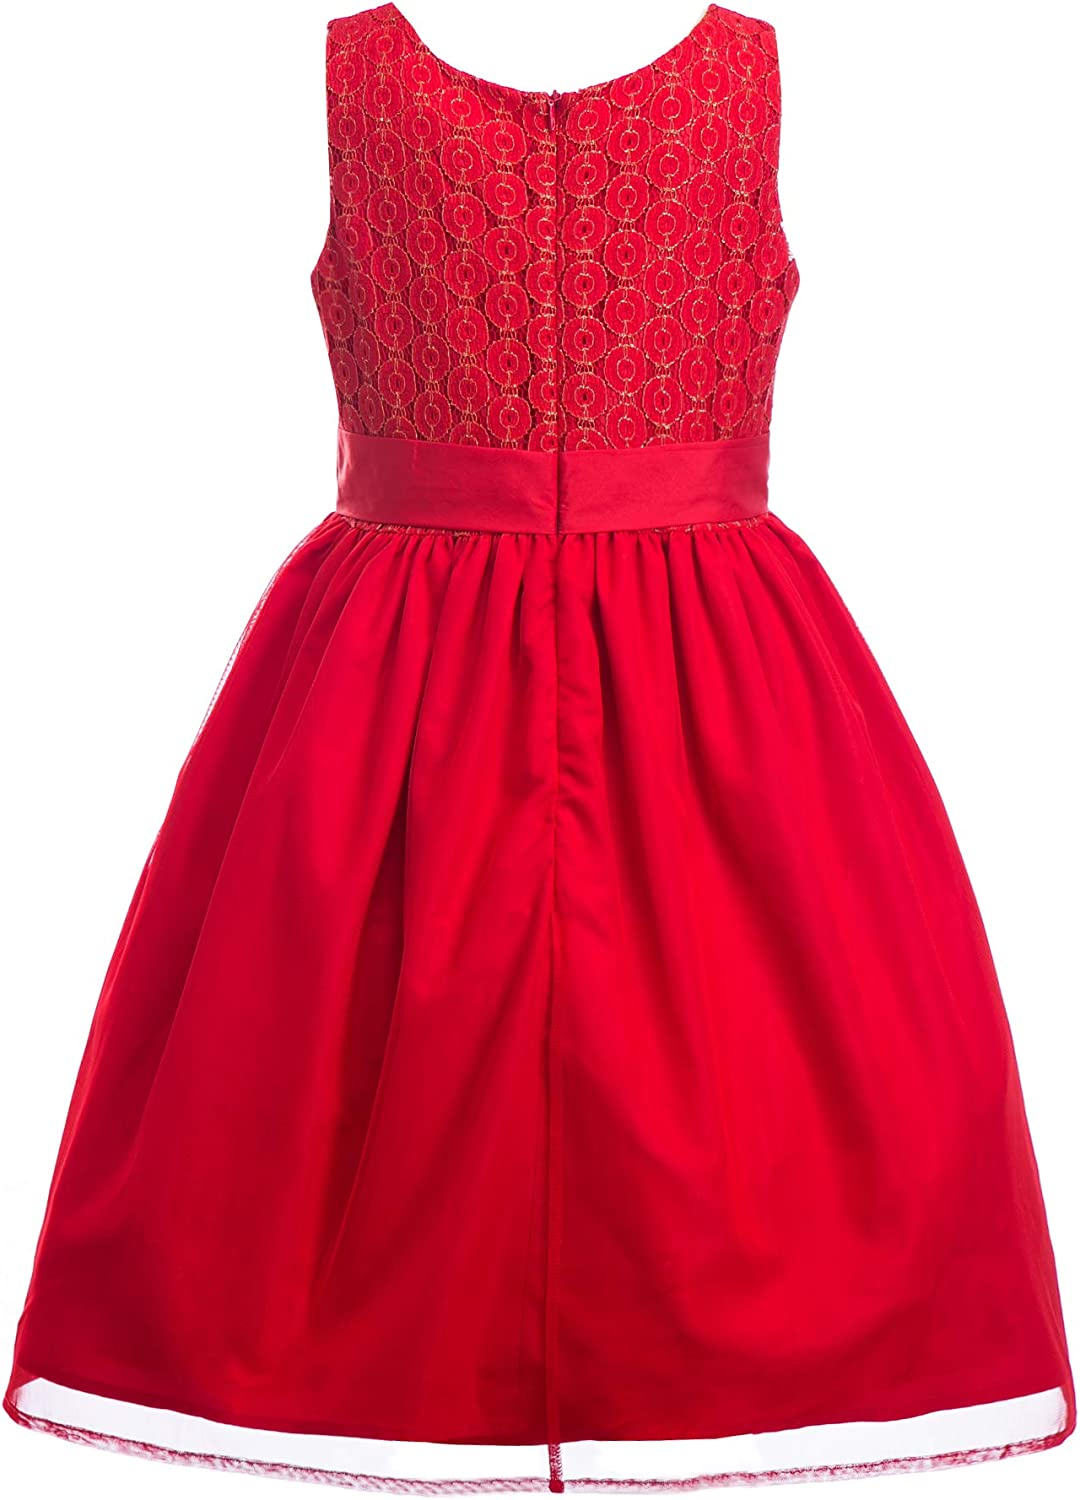 Emma Riley Girls Embroidered Dress Lace Tulle Dress,Wedding//Party